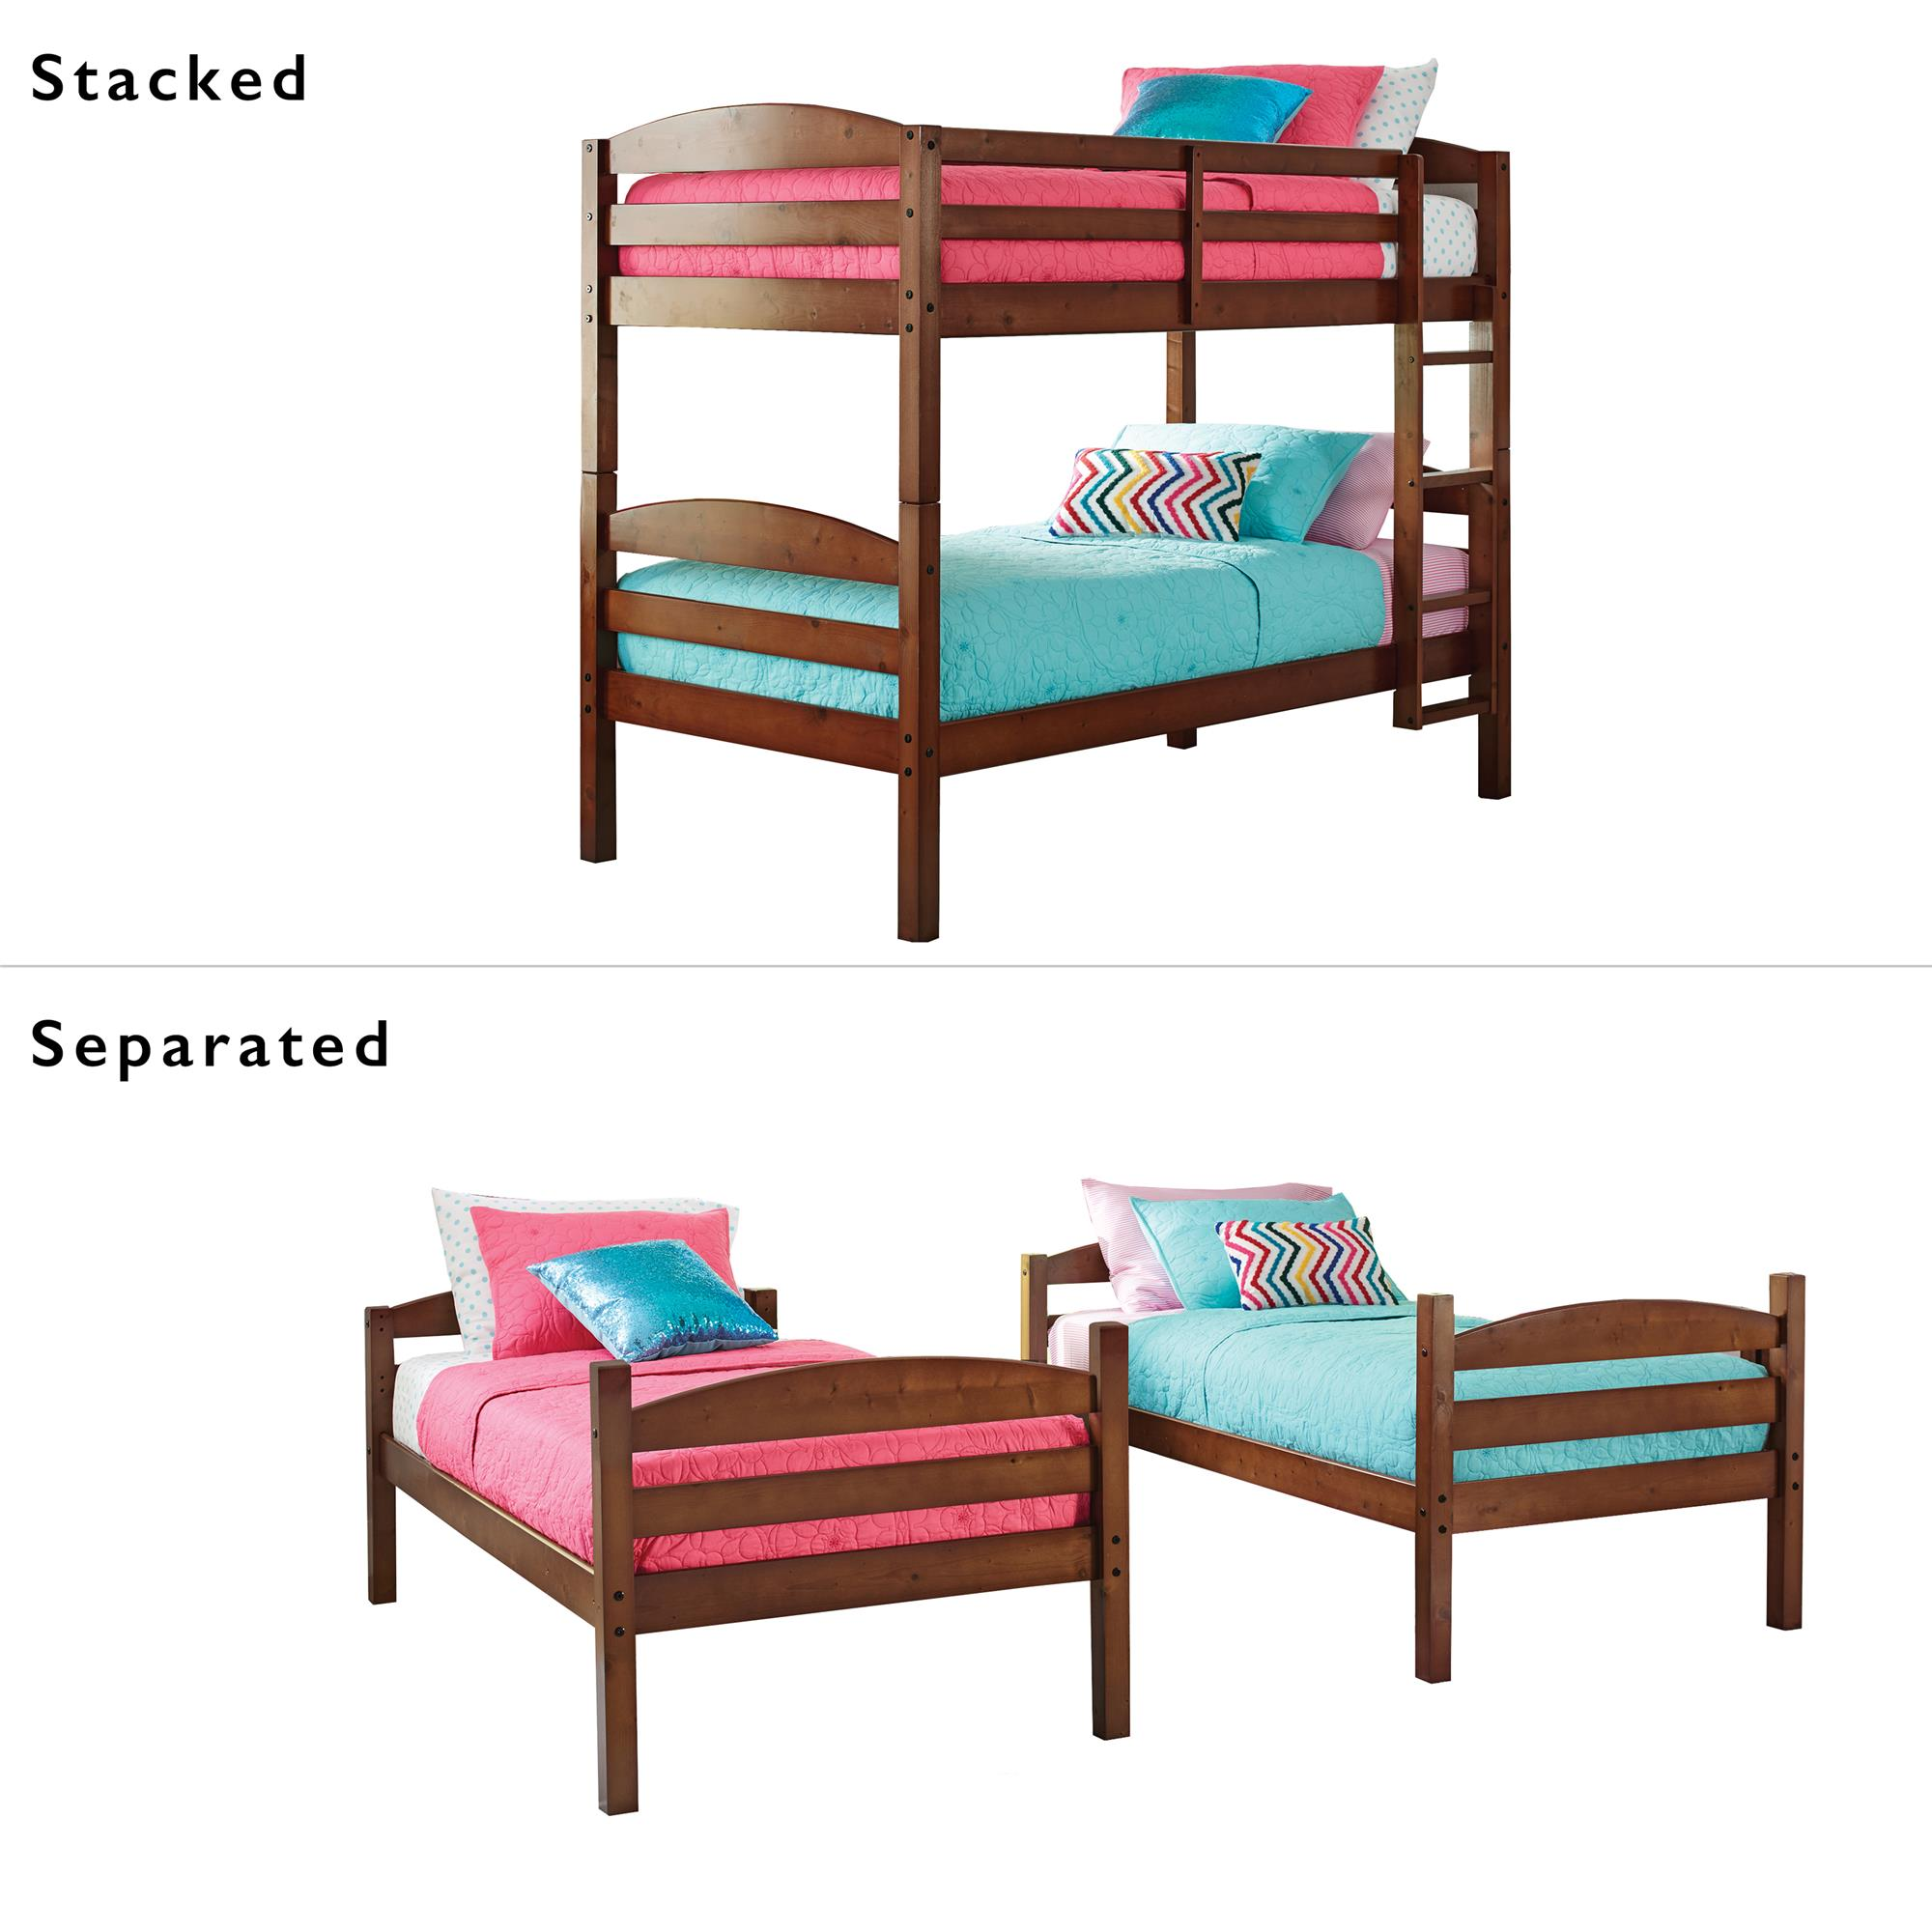 best sneakers 9bb19 1de8a Details about Twin Bunk Beds Wood Bedroom Kids Furniture Bed Frame Discount  Clearance Teen New